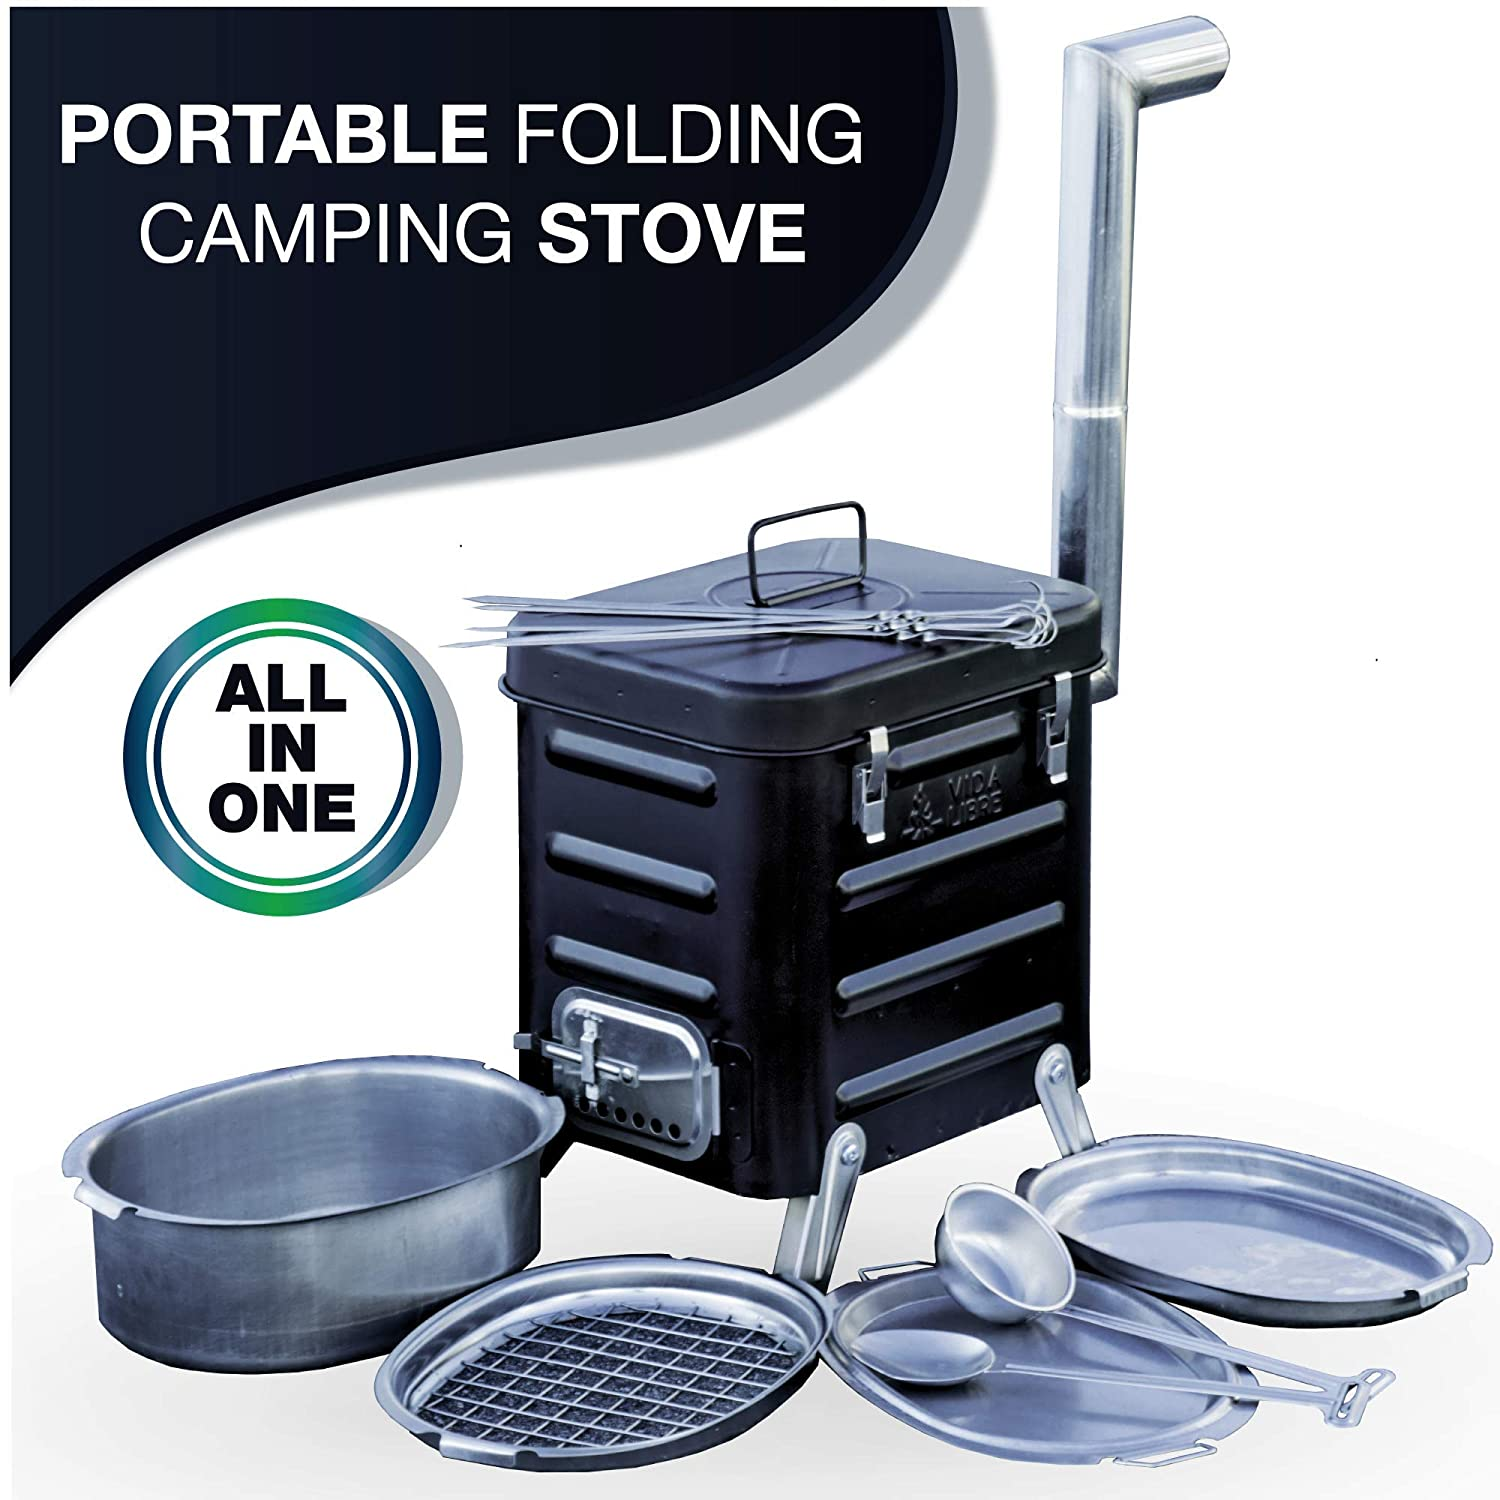 Camping Stove – Portable Outdoor Charcoal Biomass and Wood Burning Folding Camp Stove for Camping, Hiking, Fishing, Hunting, RV, Emergency Preparedness - Portable Camping Grill - BBQ Rocket Stove